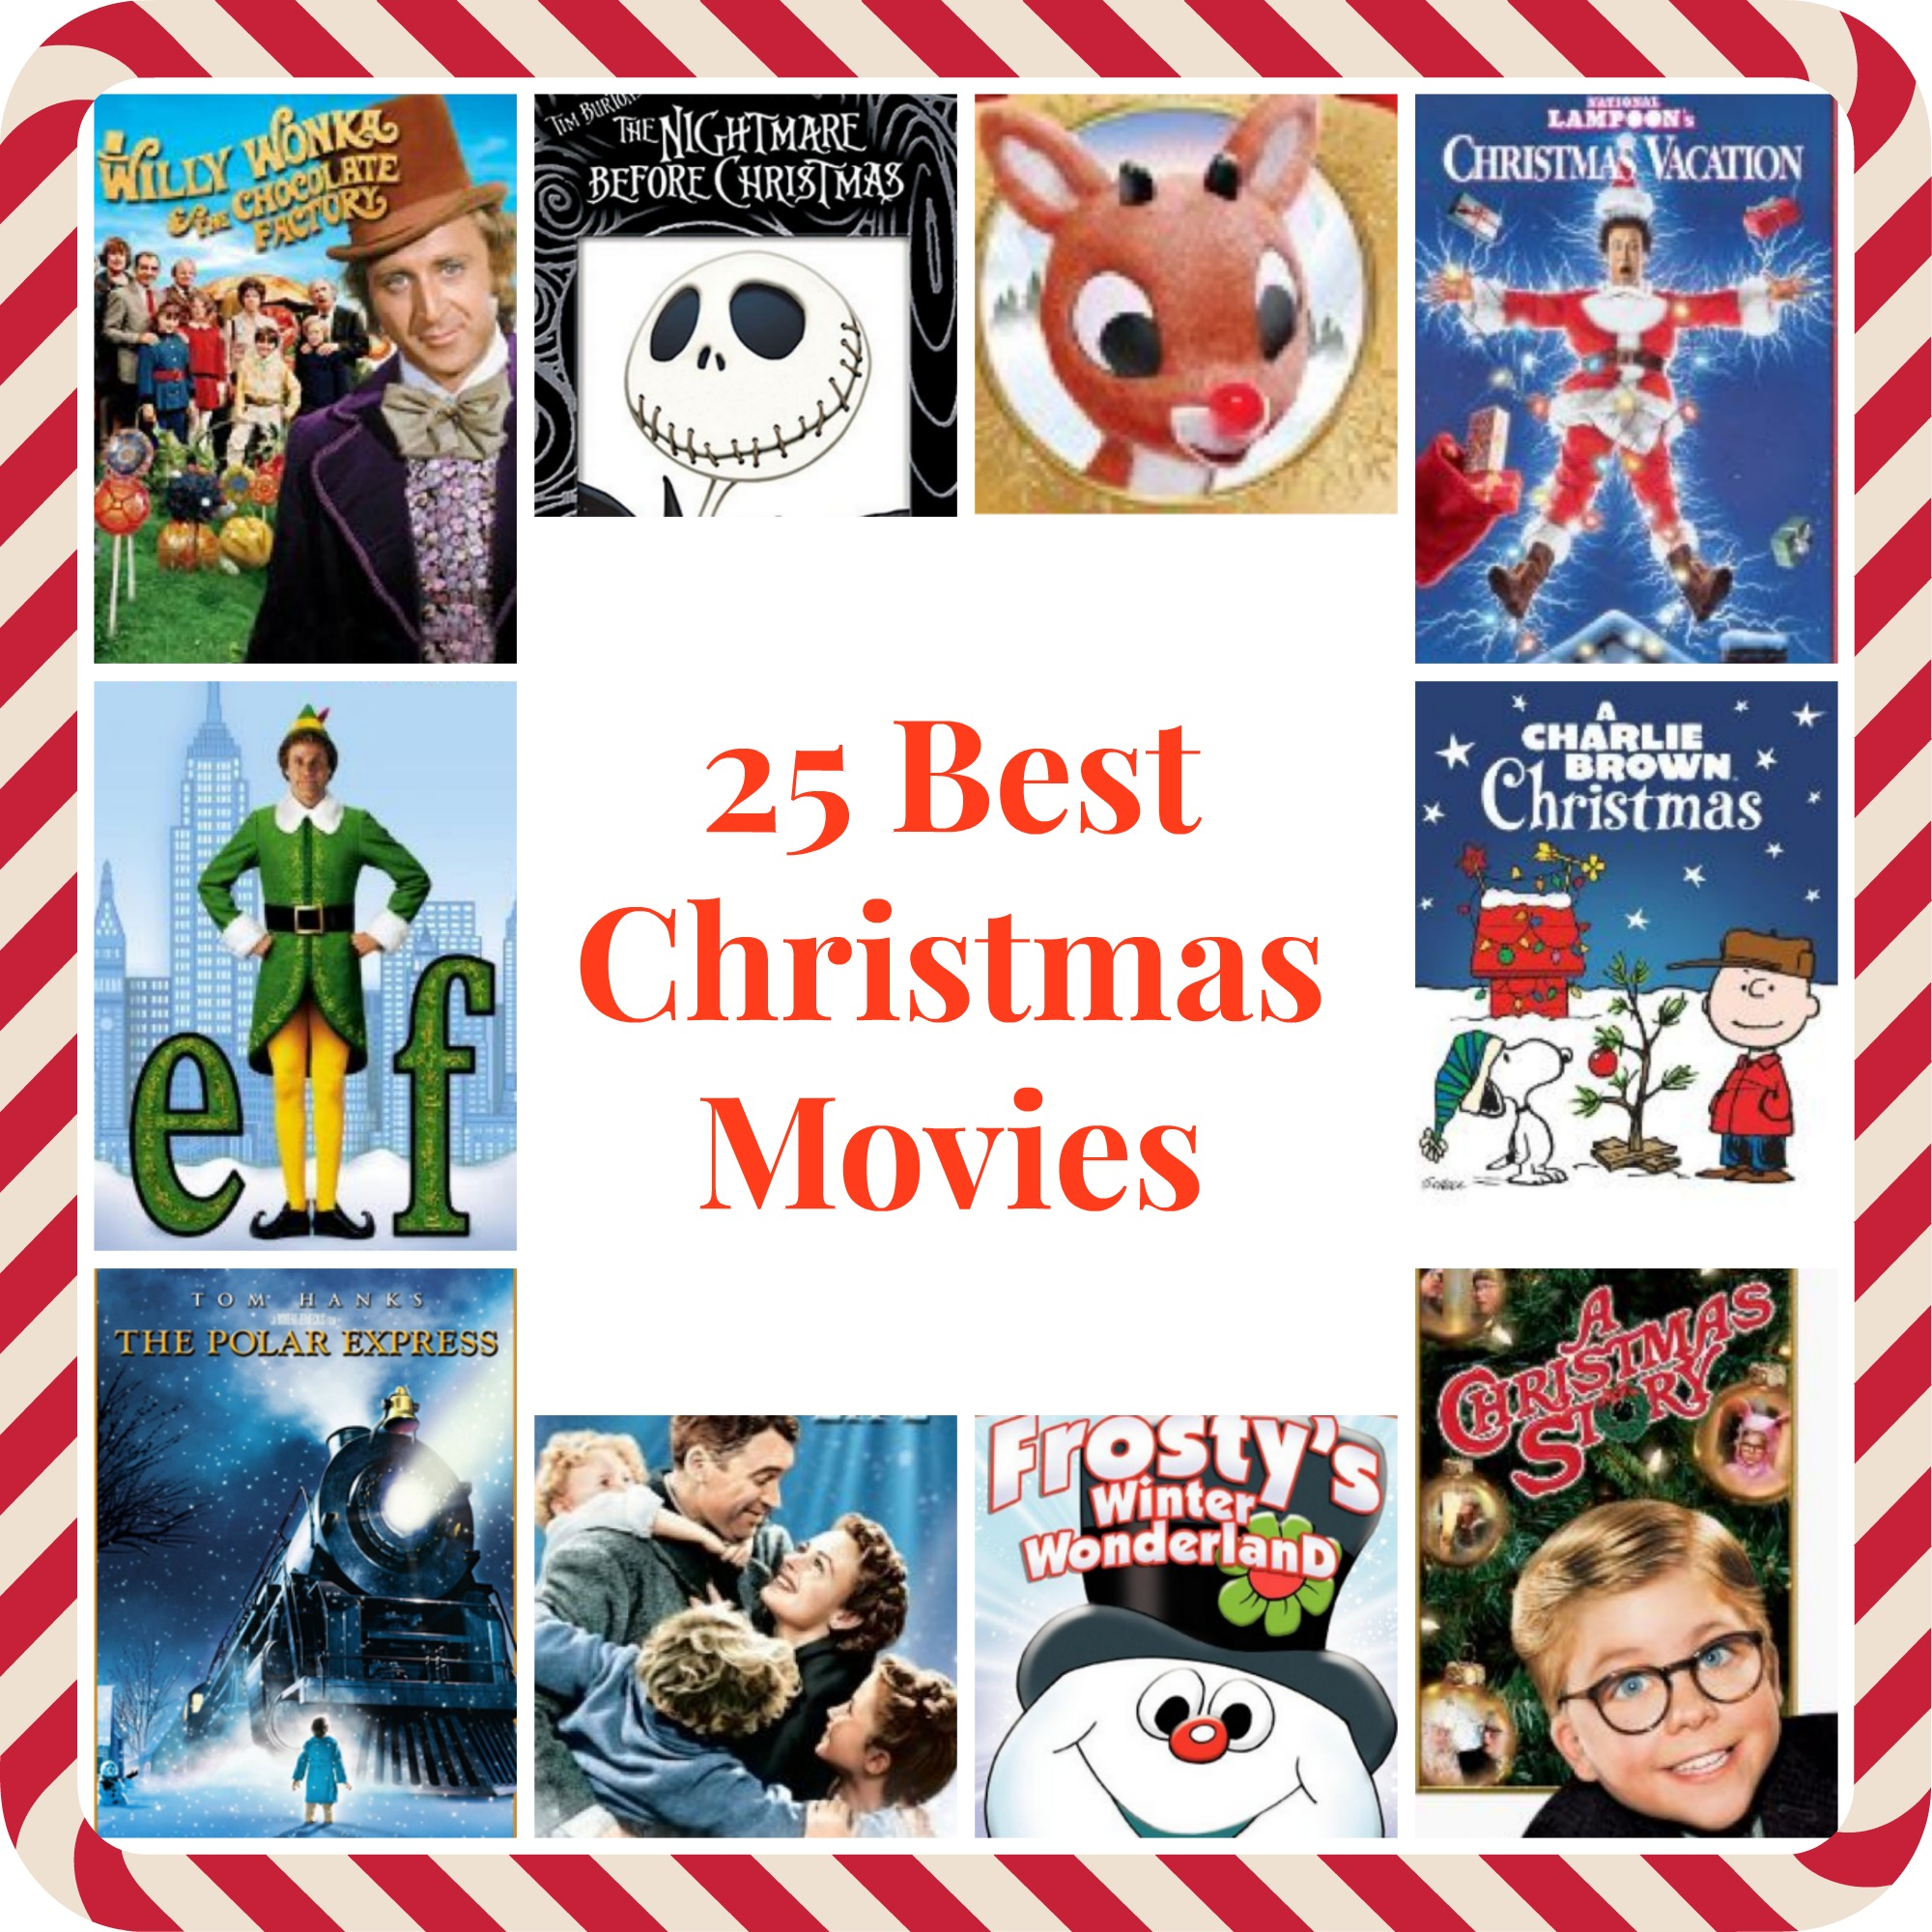 best christmas movies favorite christmas movies family christmas movies adult christmas movies - The Best Christmas Movies